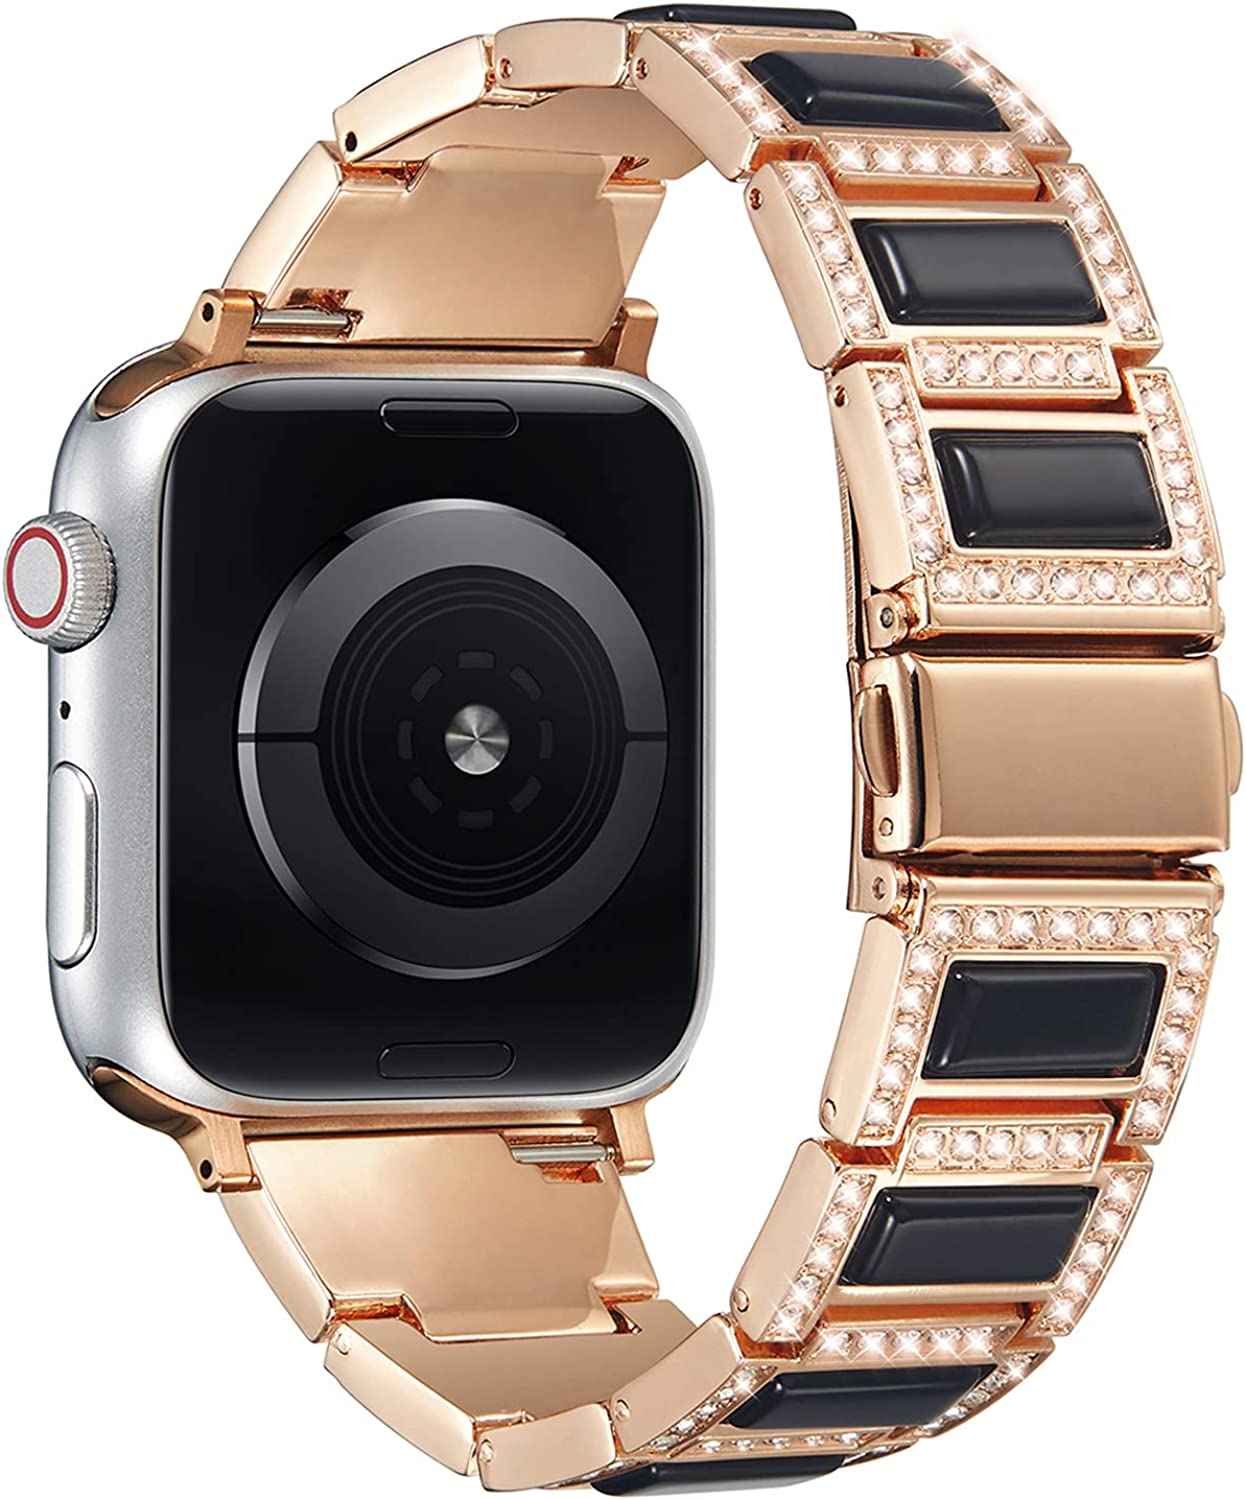 PROATL Bling Metal Strap Band Compatible with Apple Watch Band 44mm 42mm 40mm 38mm, Stainless Steel and Opal Diamond Rhinestone Business Wristband Bracelet Replacement for iWatch Series SE 6 5 4 3 2 1